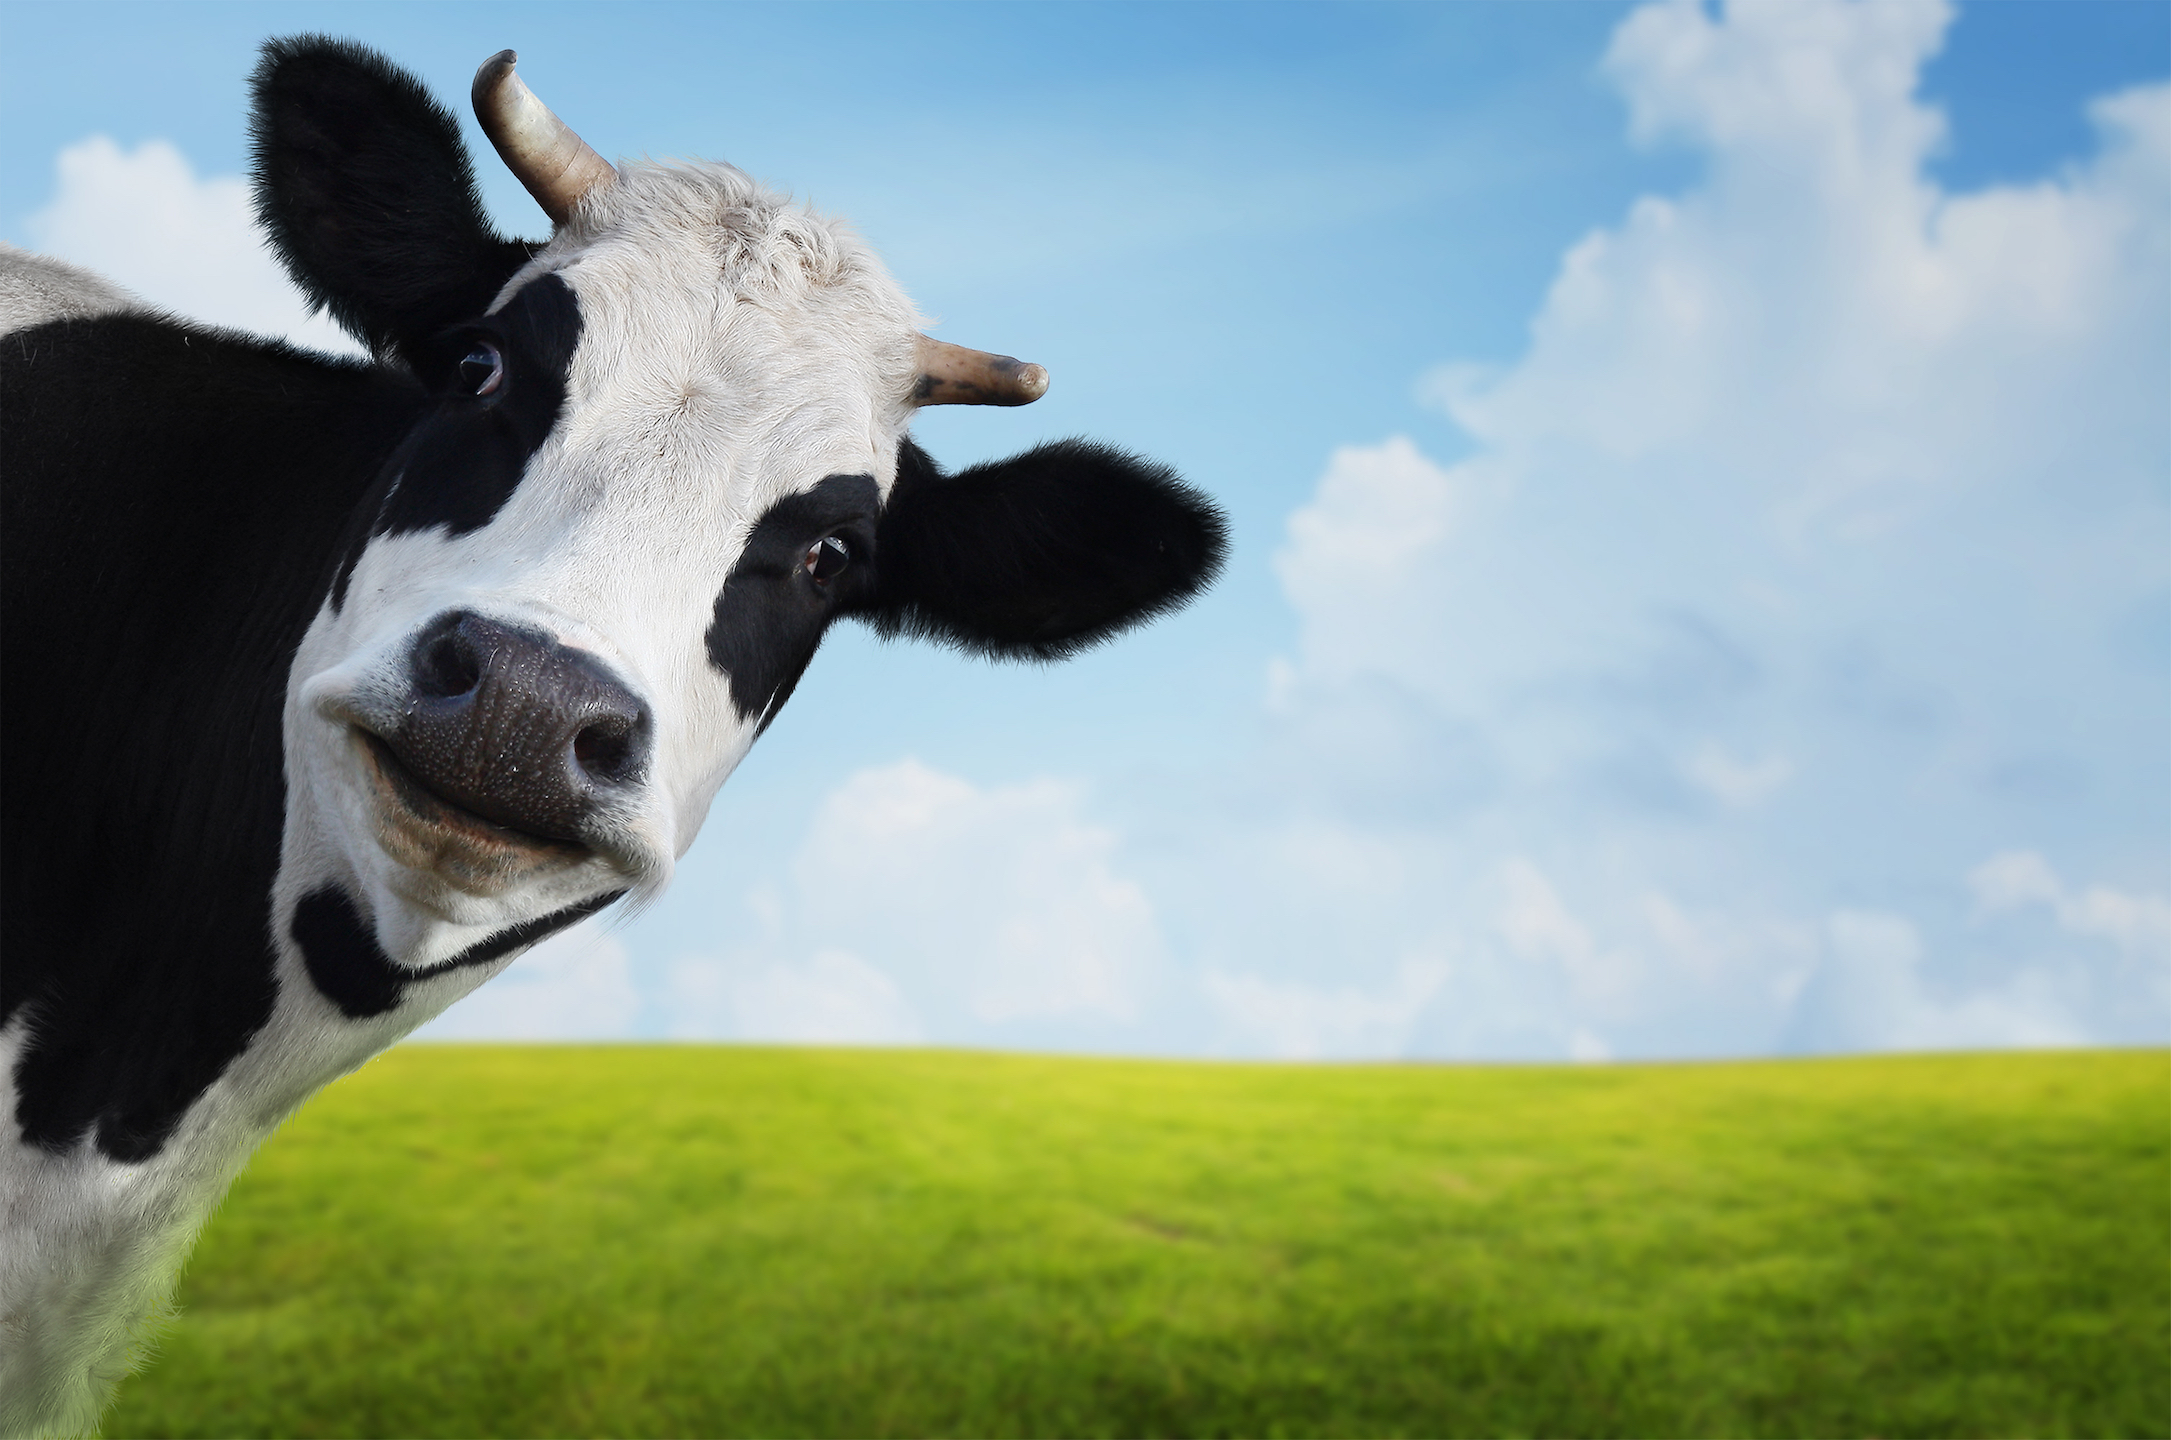 A new study reveals that global livestock methane emissions have been significantly underestimated due to use of outdated guidelines.